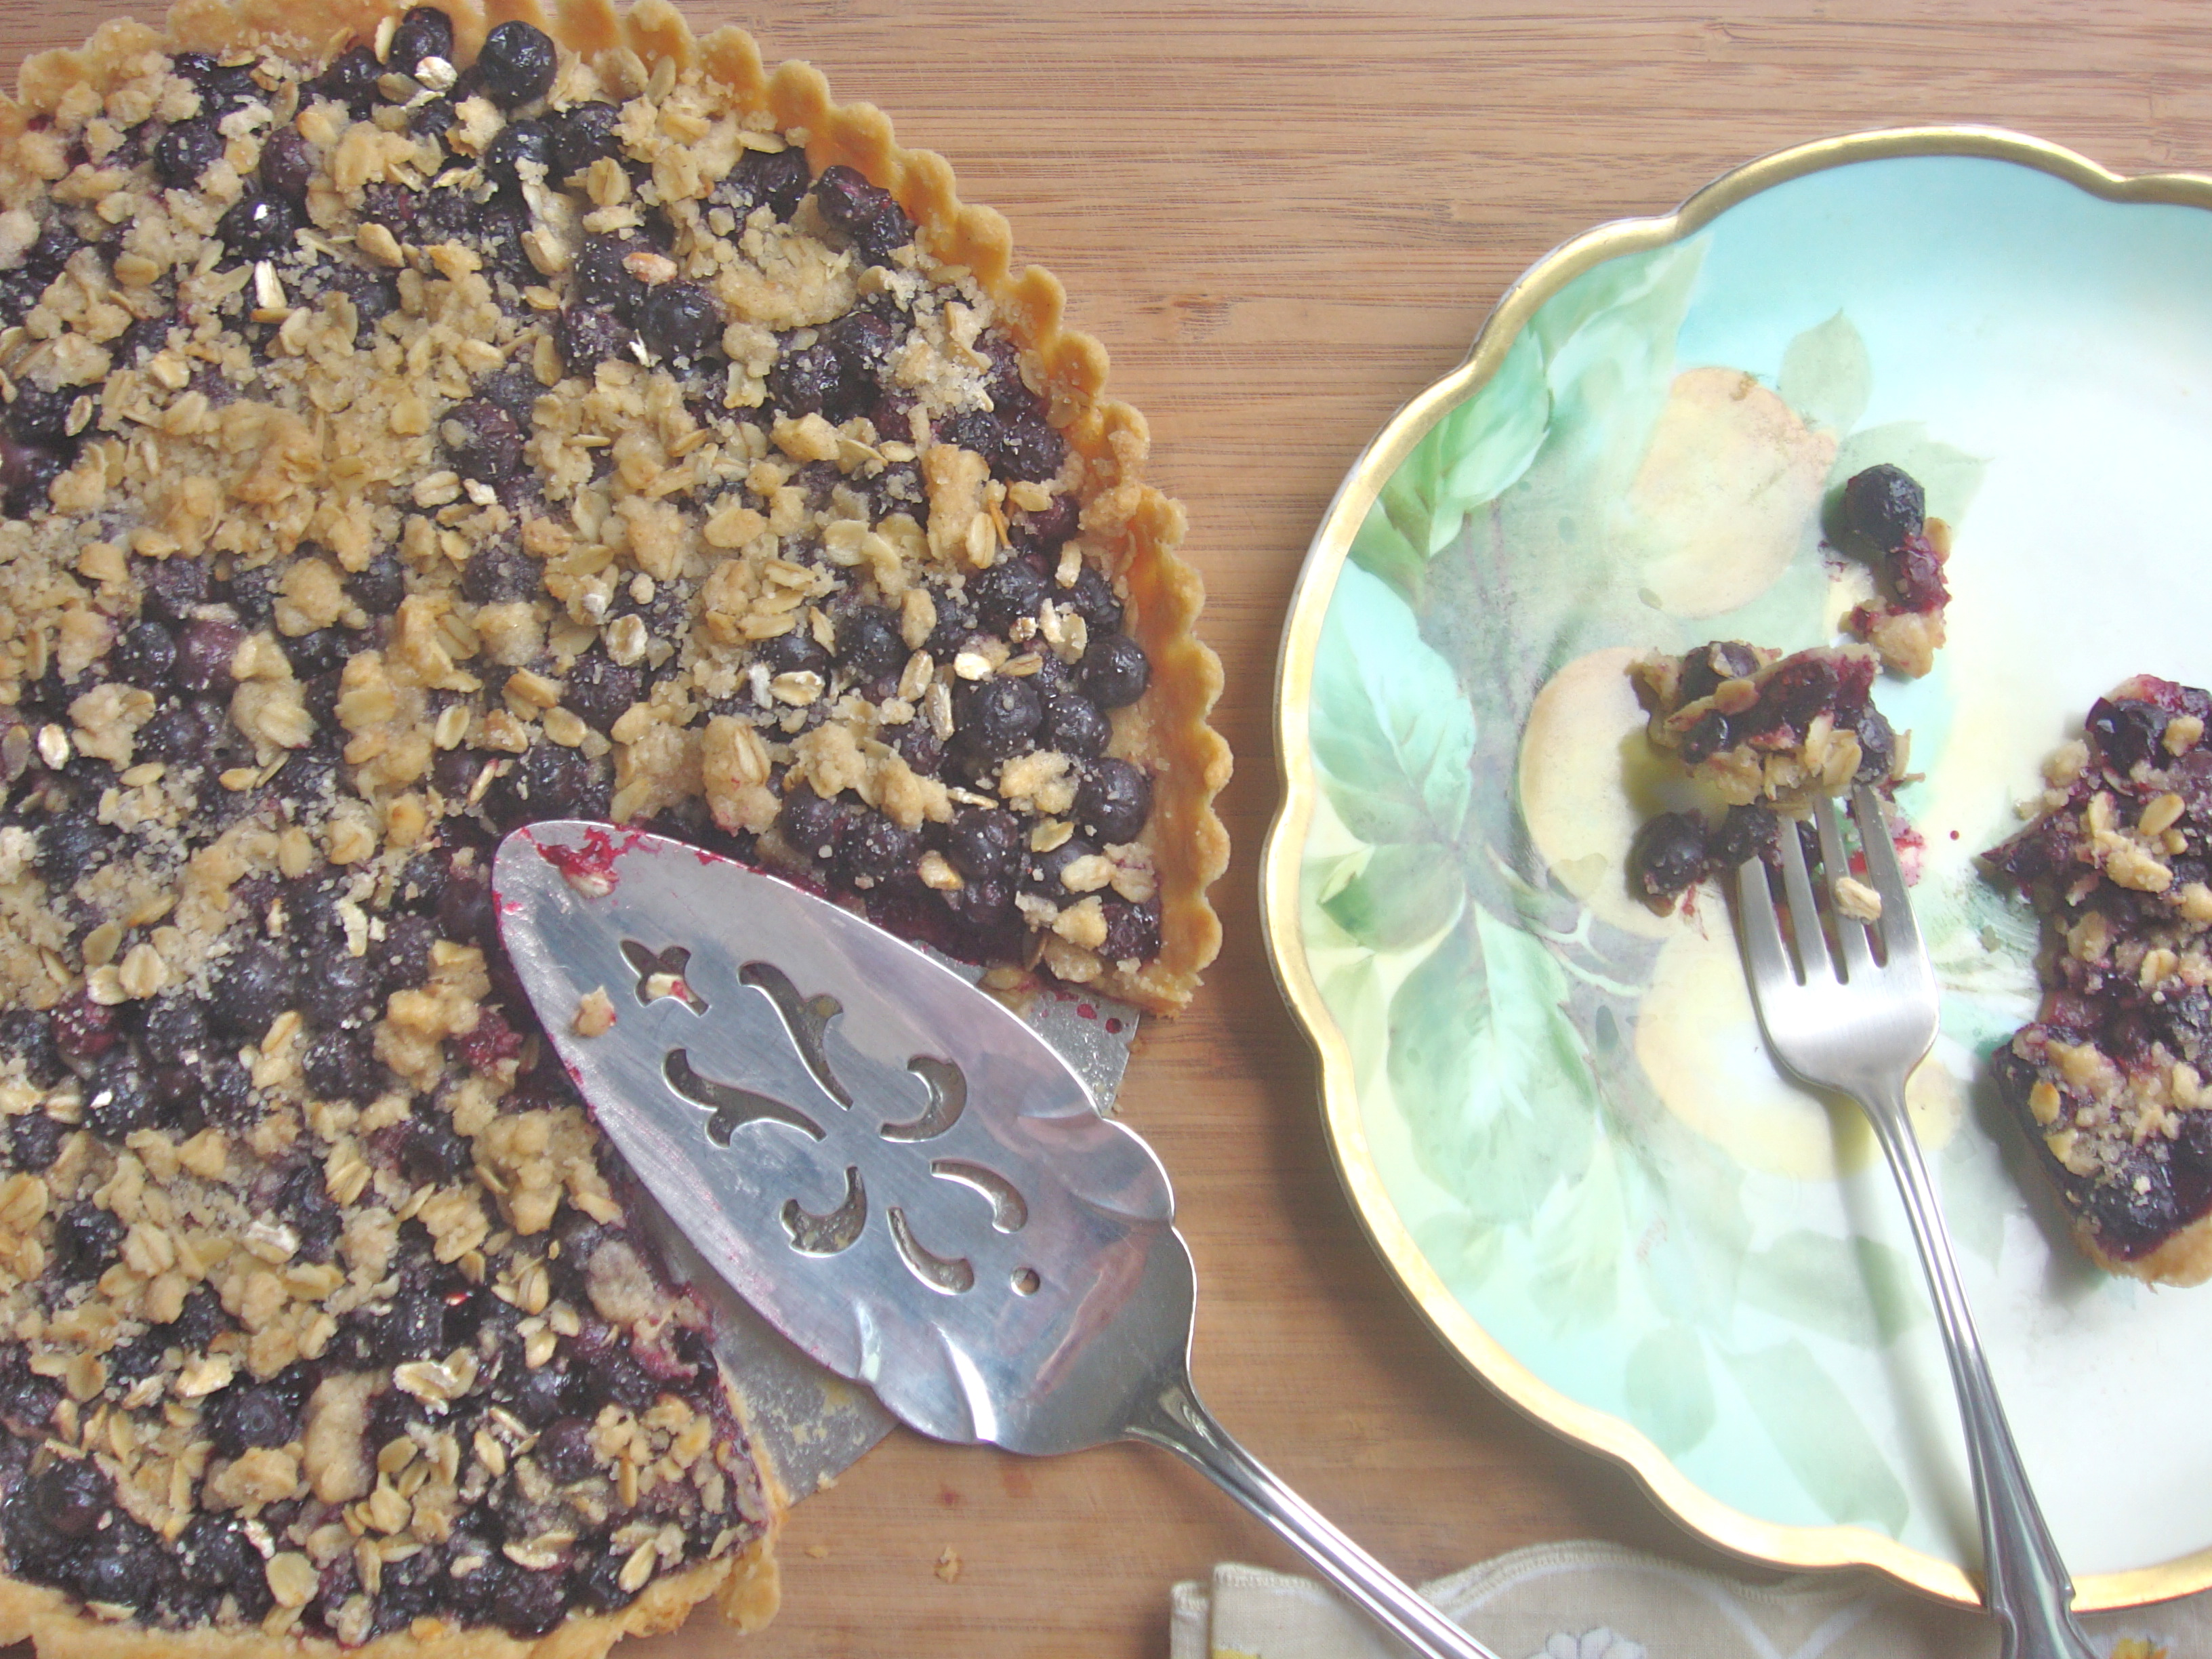 blueberry streusel tart